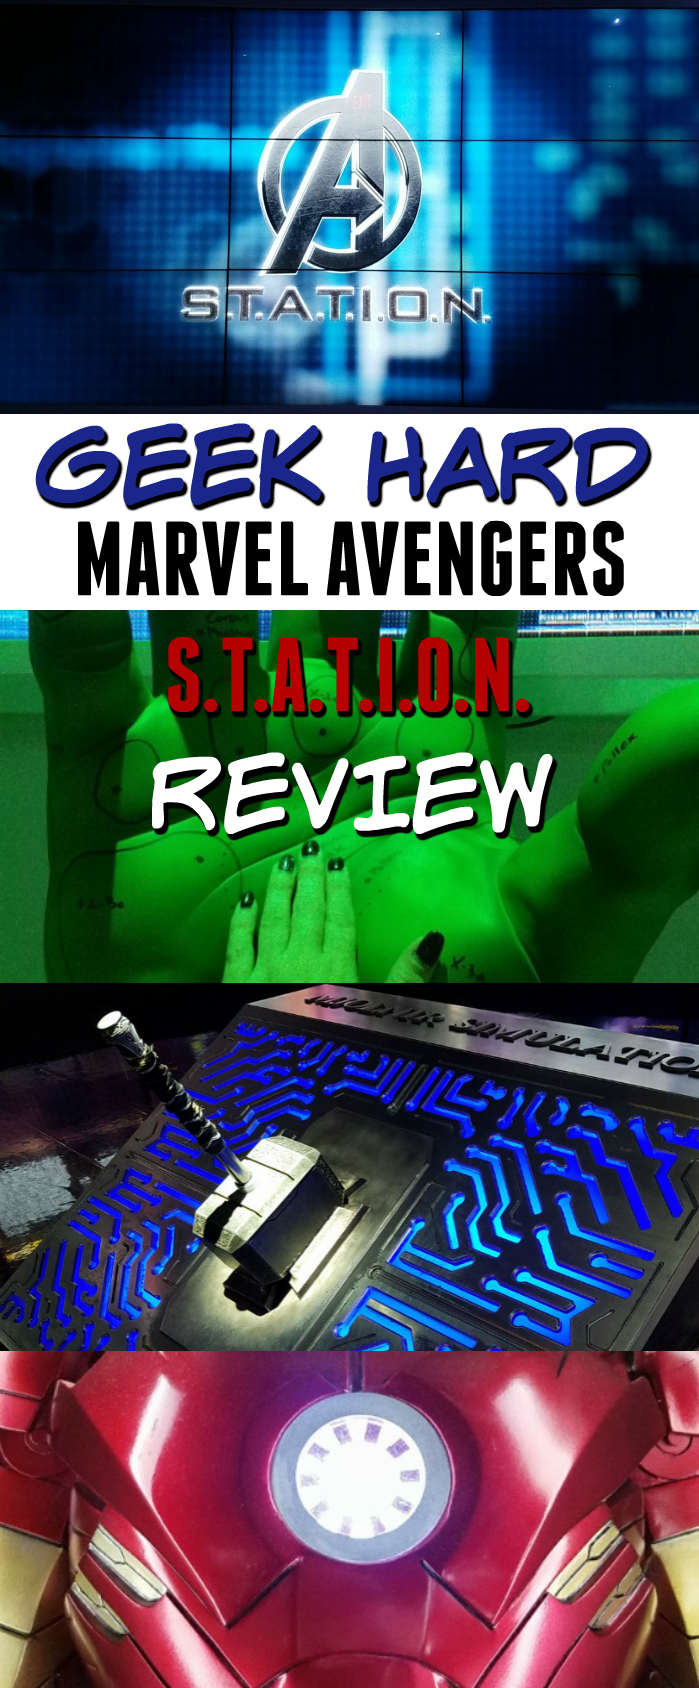 Marvel Avengers Station Review, Things to do in Las Vegas